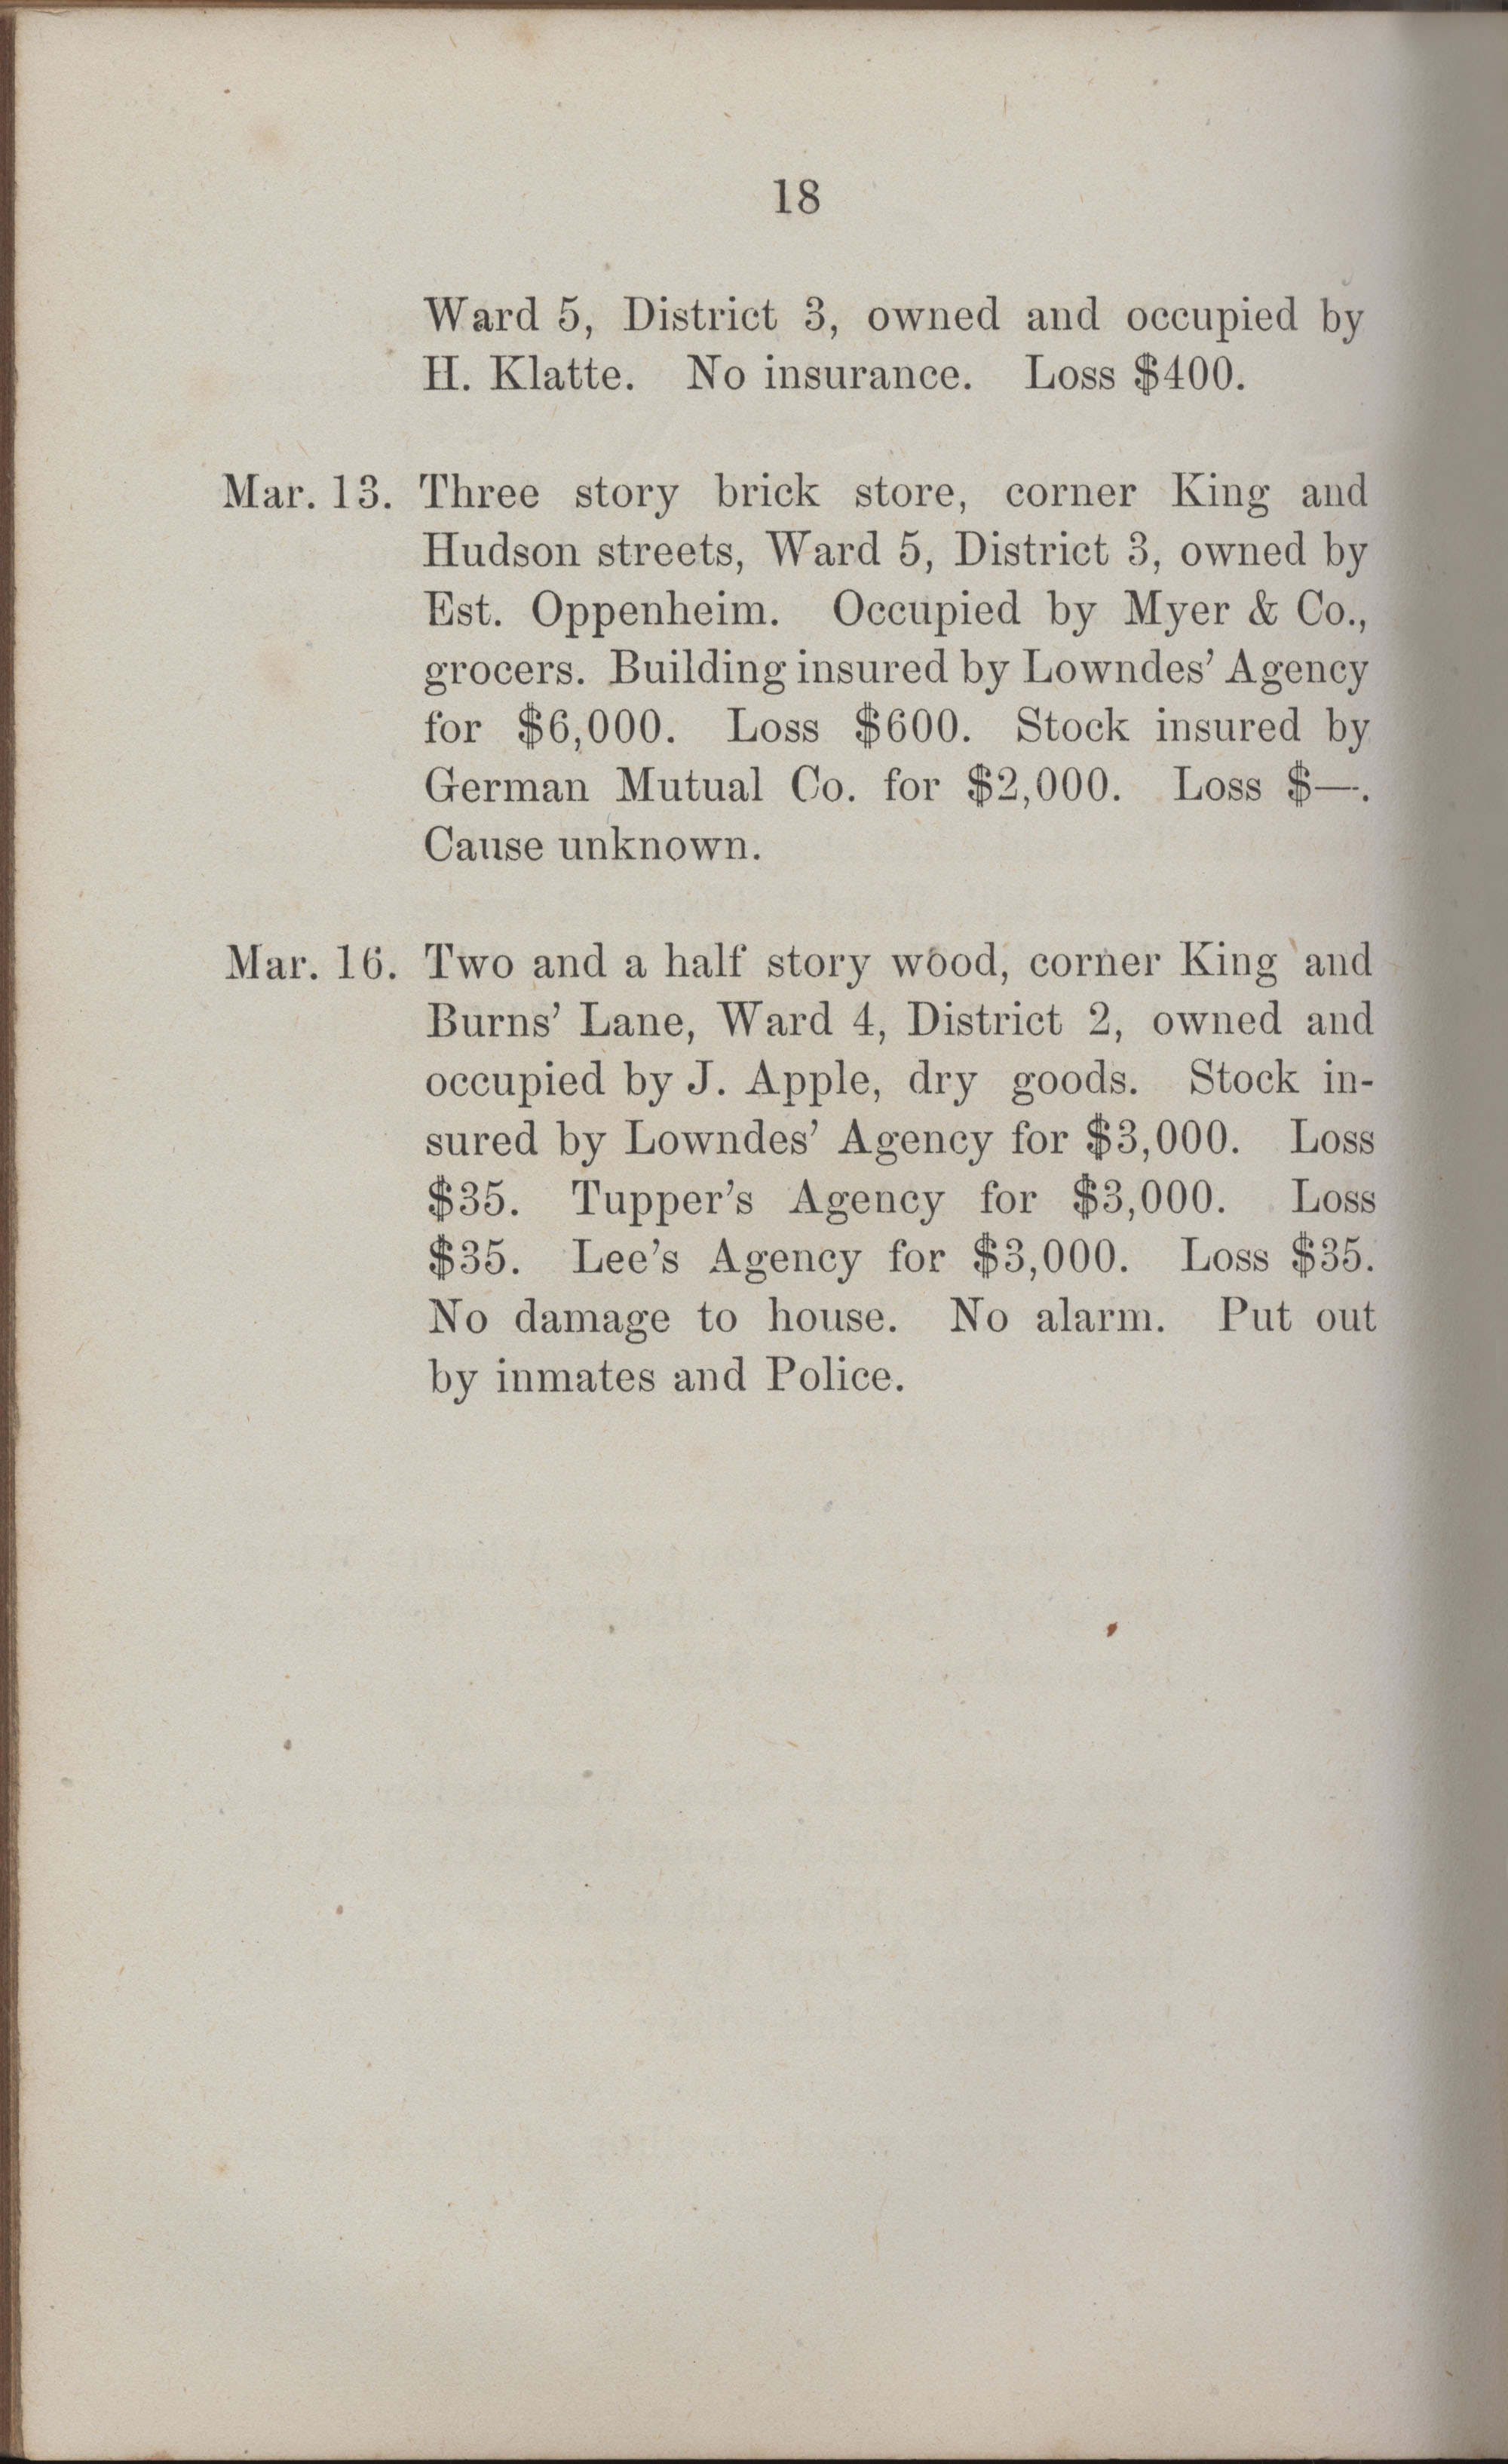 Annual Report of the Chief of the Fire Department of the City of Charleston, page 413